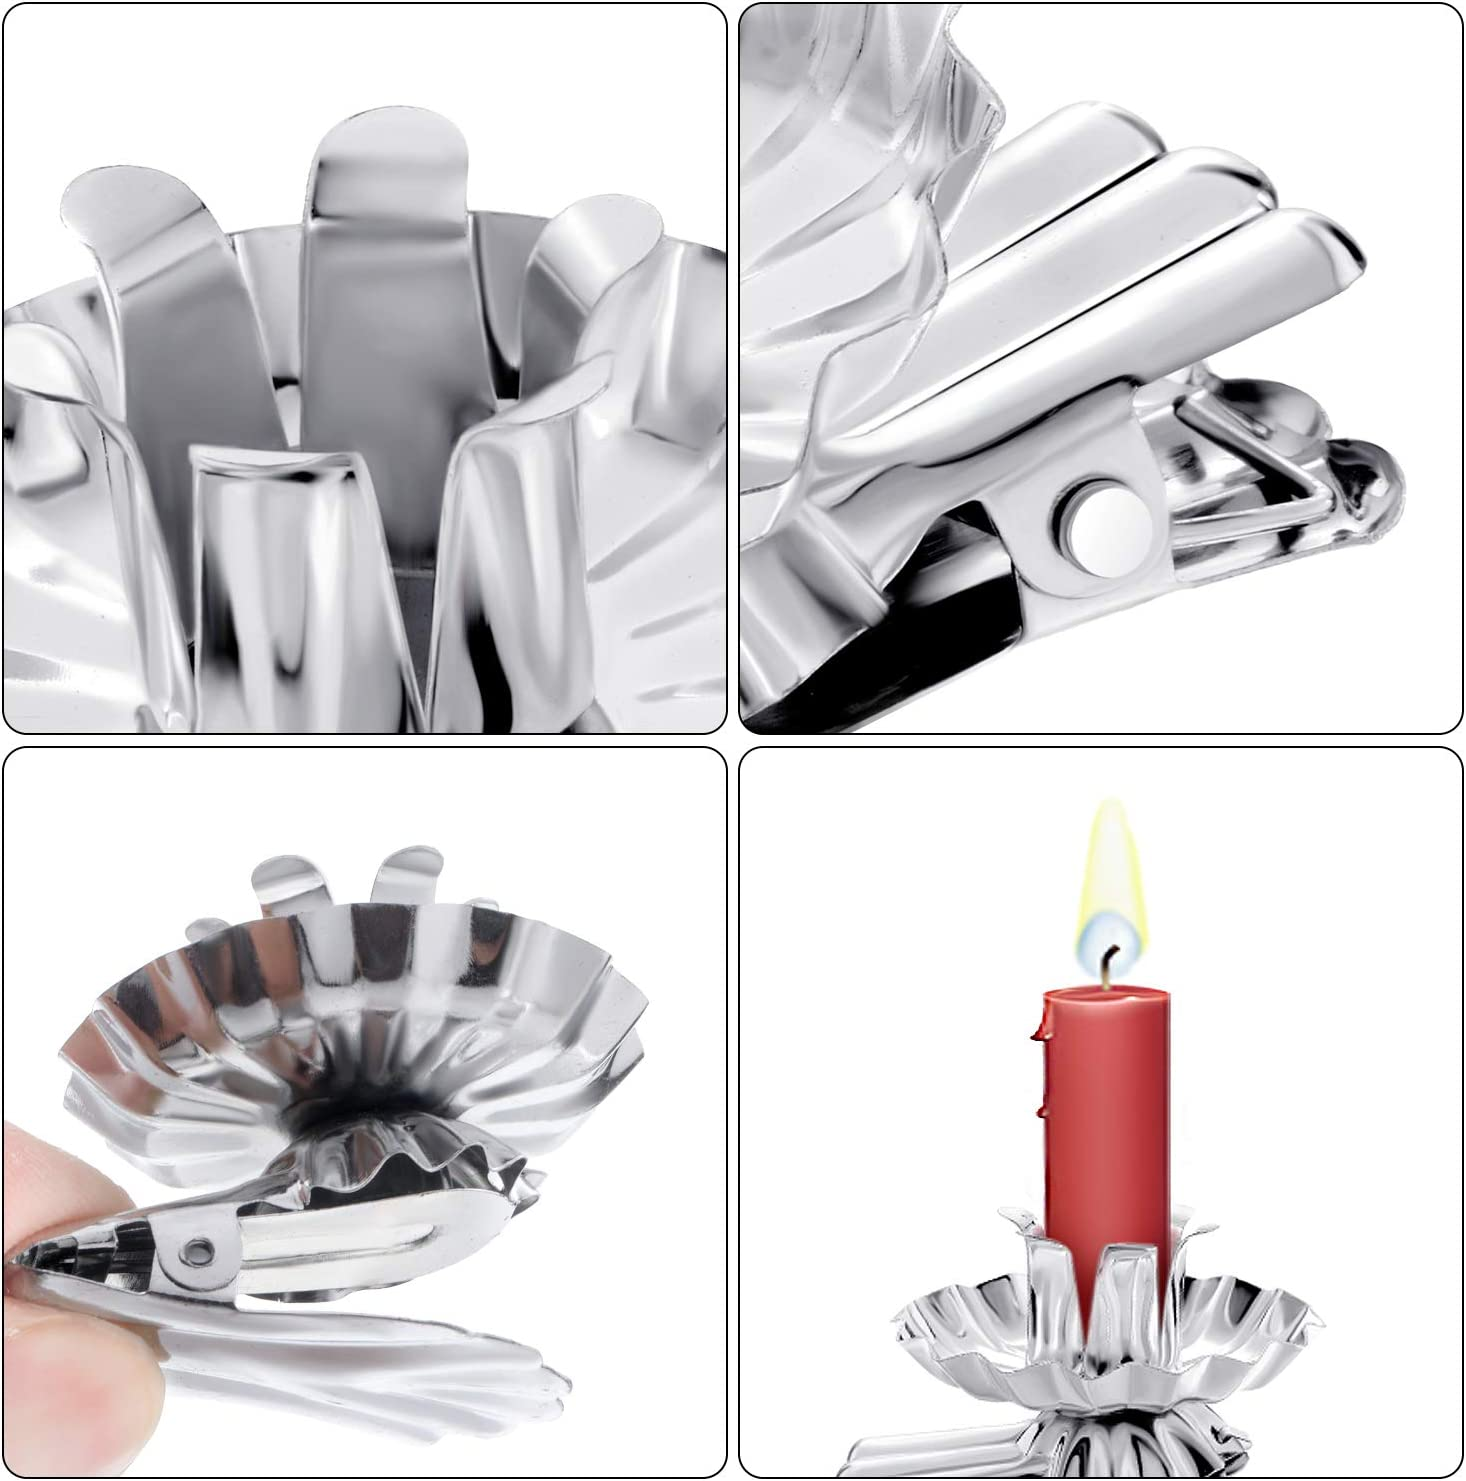 Boao 20 Pieces Candle Holders Clip Candle Holder Silver Flower Shaped Candlestick Holders Metal Candles Clips for Christmas Birthday Party